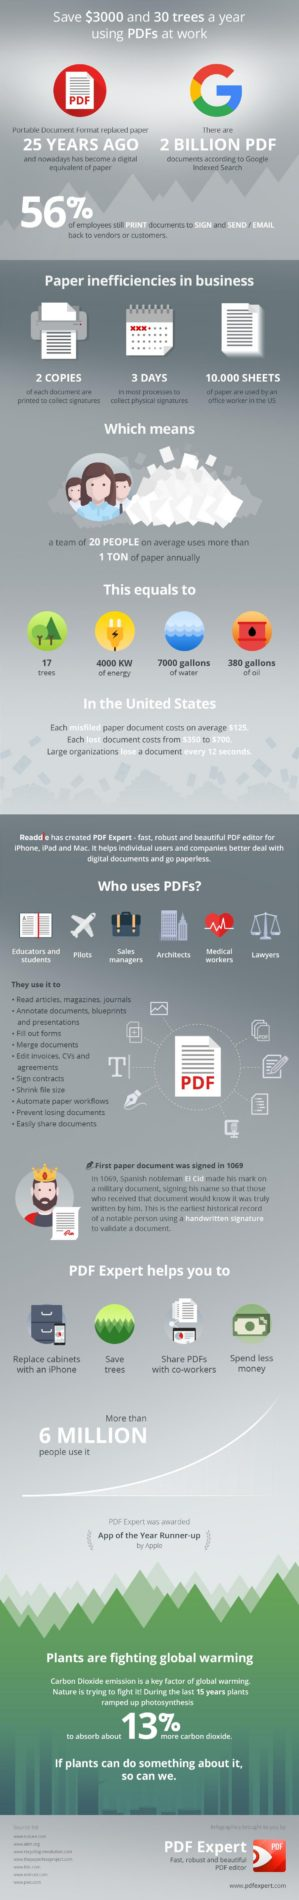 Save 30 Trees a Year Using PDFs at Work infographic